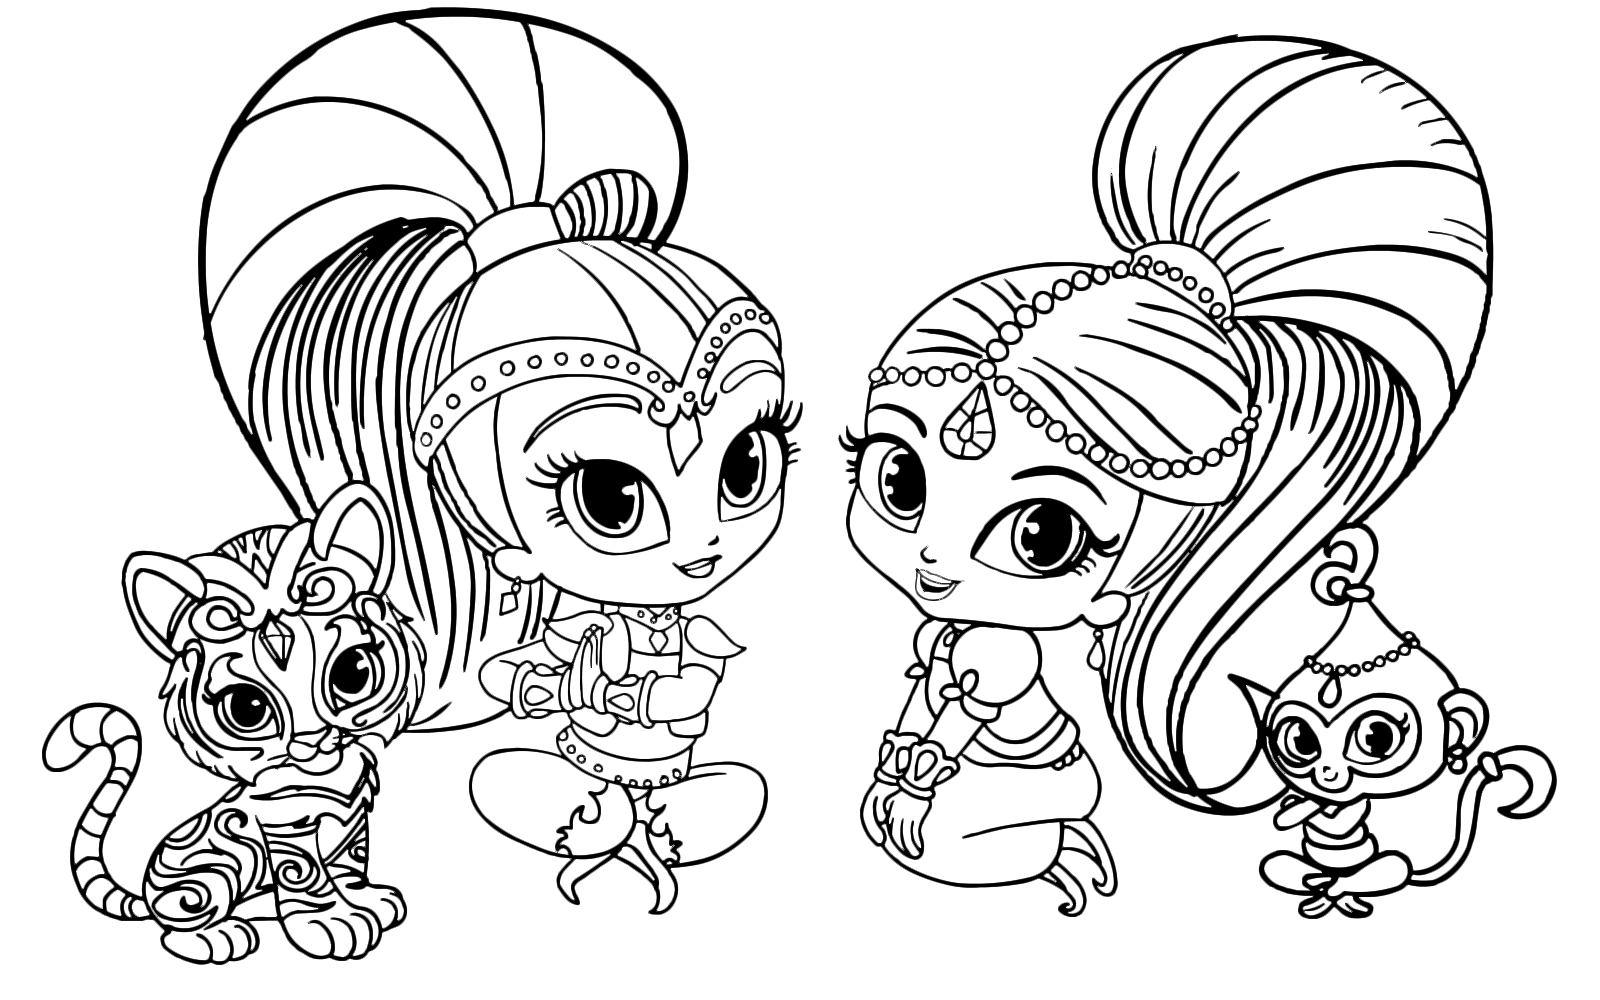 Shimmer and shine shimmer and shine sedute con tala e nahal for Shimmer and shine da colorare